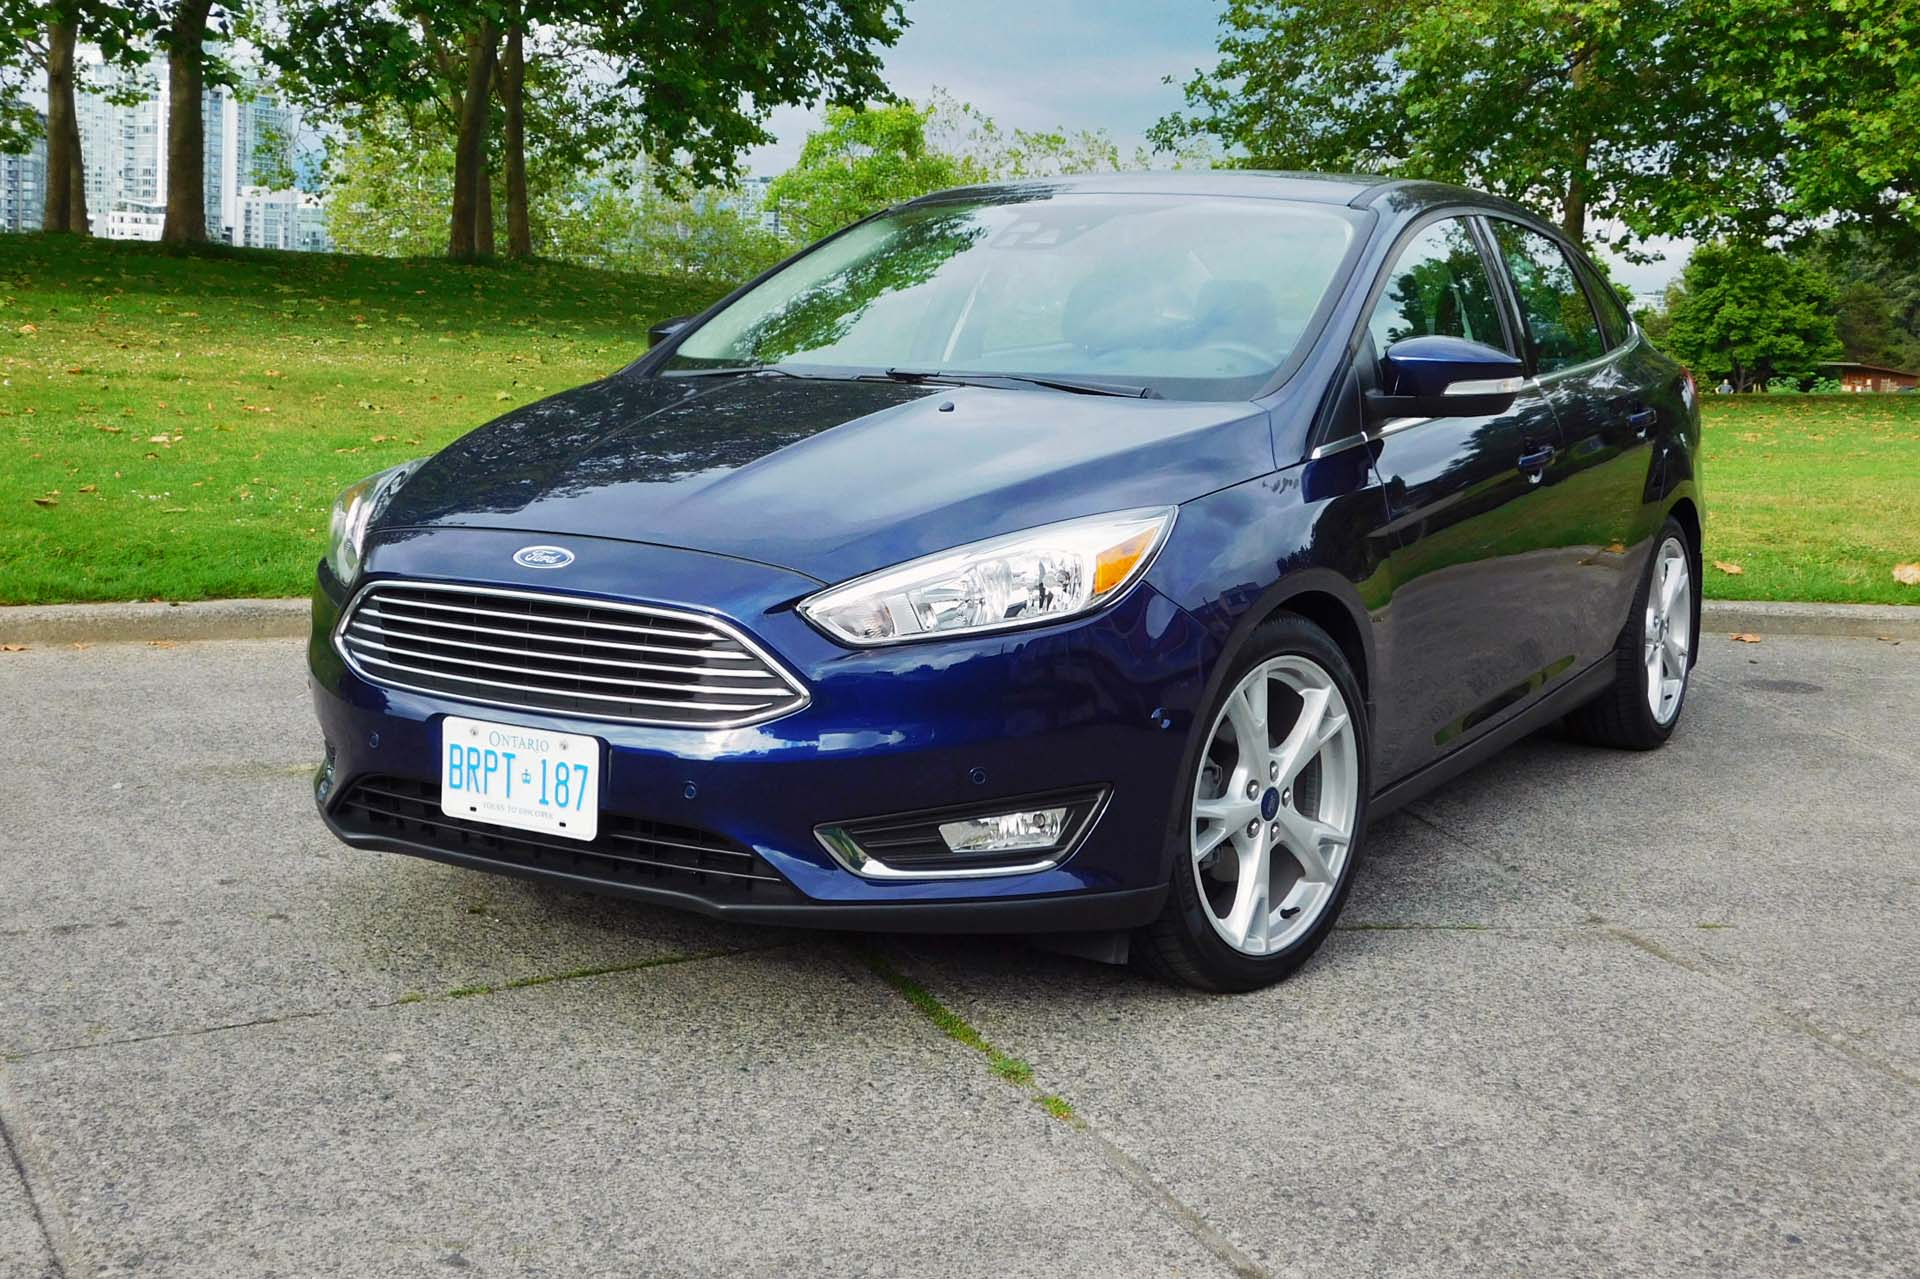 Test Drive: 2016 Ford Focus Titanium Sedan - Page 3 of 3 - Autos.ca | Page 3